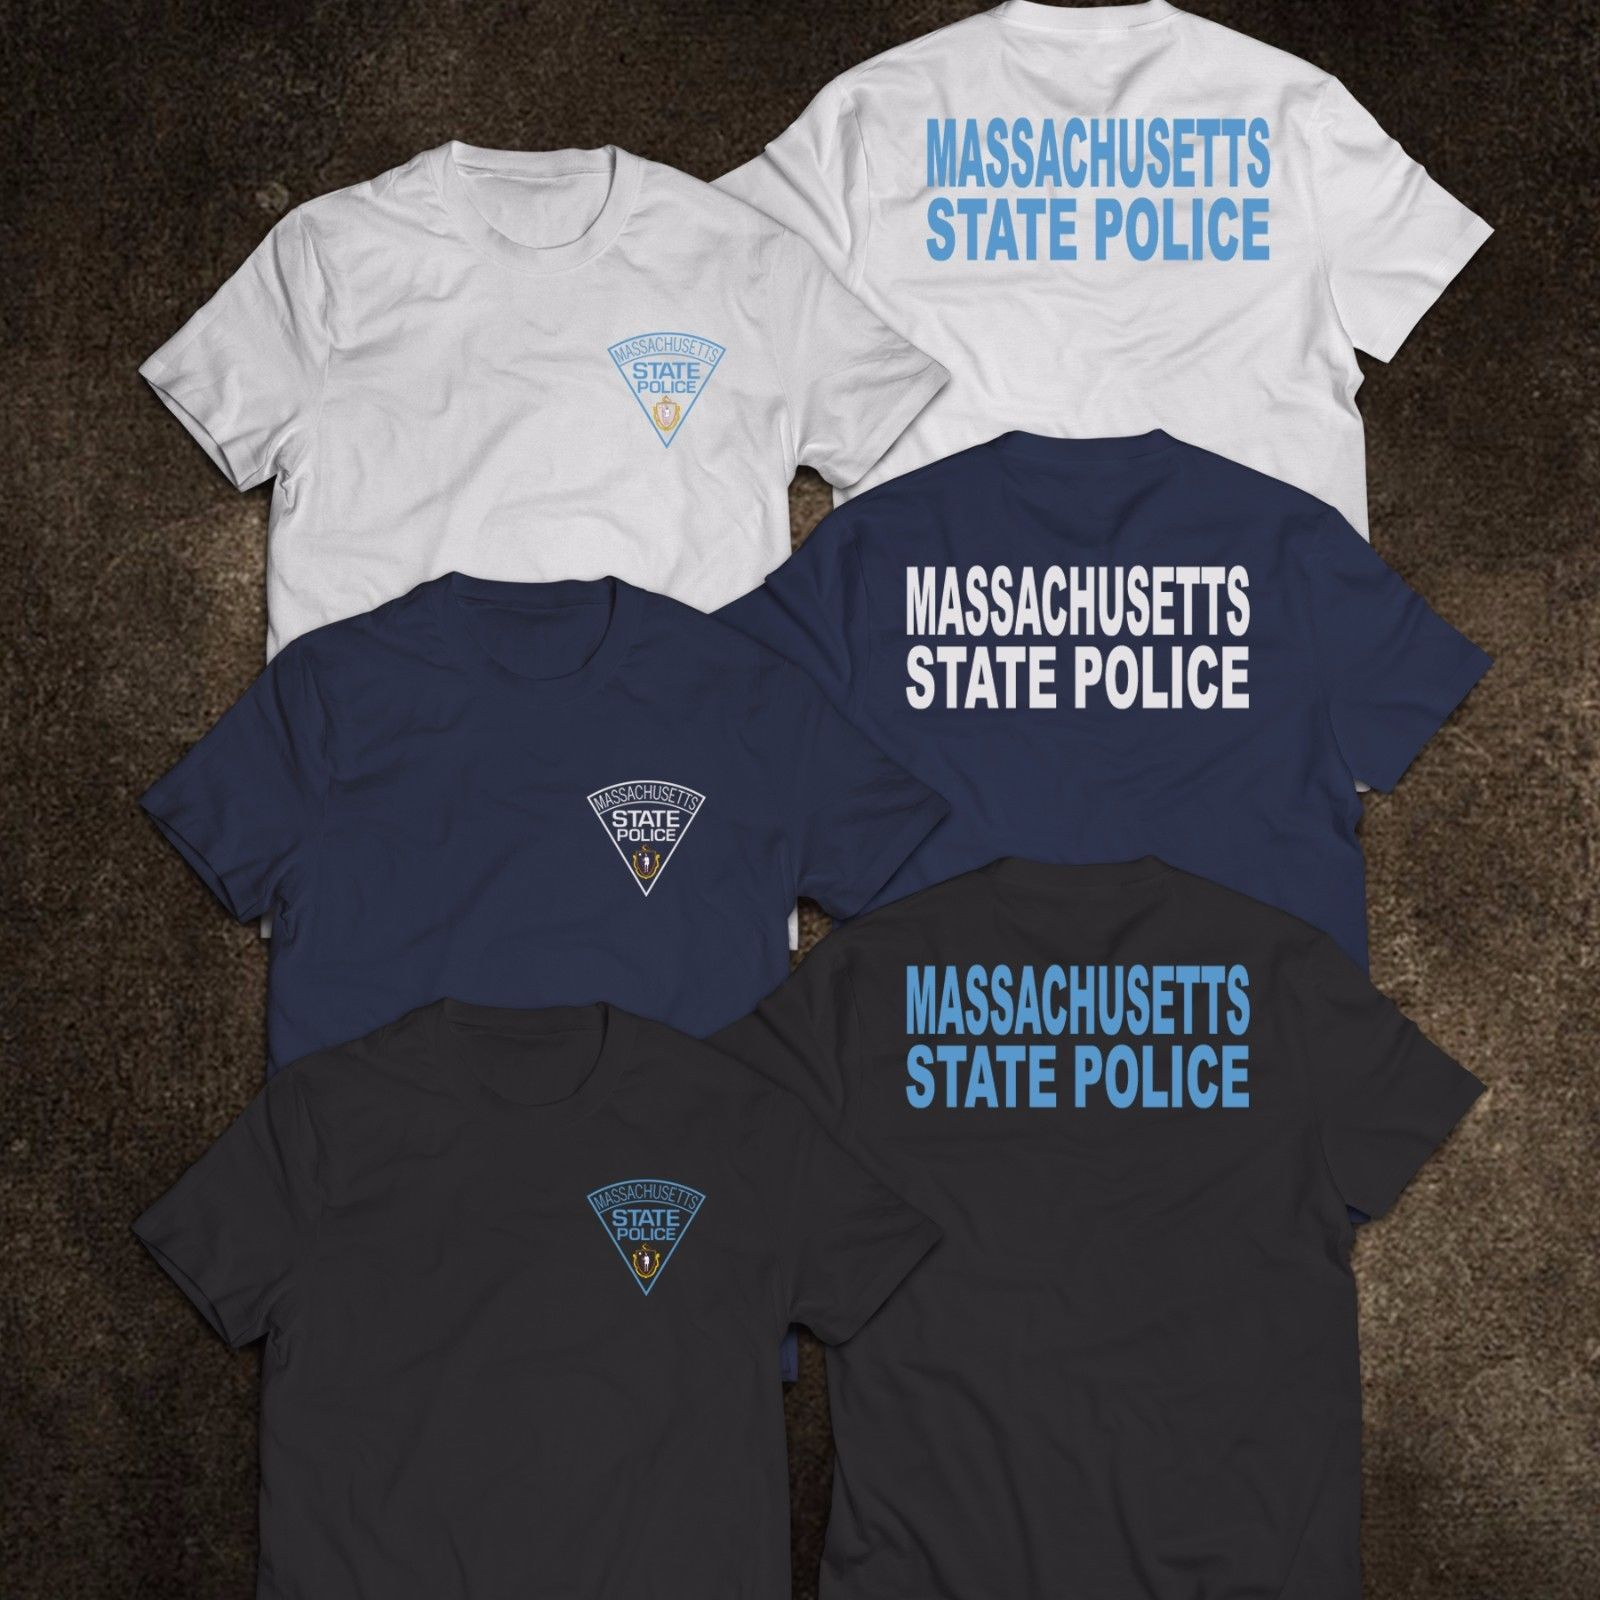 2019 Fashion NEW <font><b>Massachusetts</b></font> Police State United States Department Justice Mens Tee T-Shirt Tee shirt image